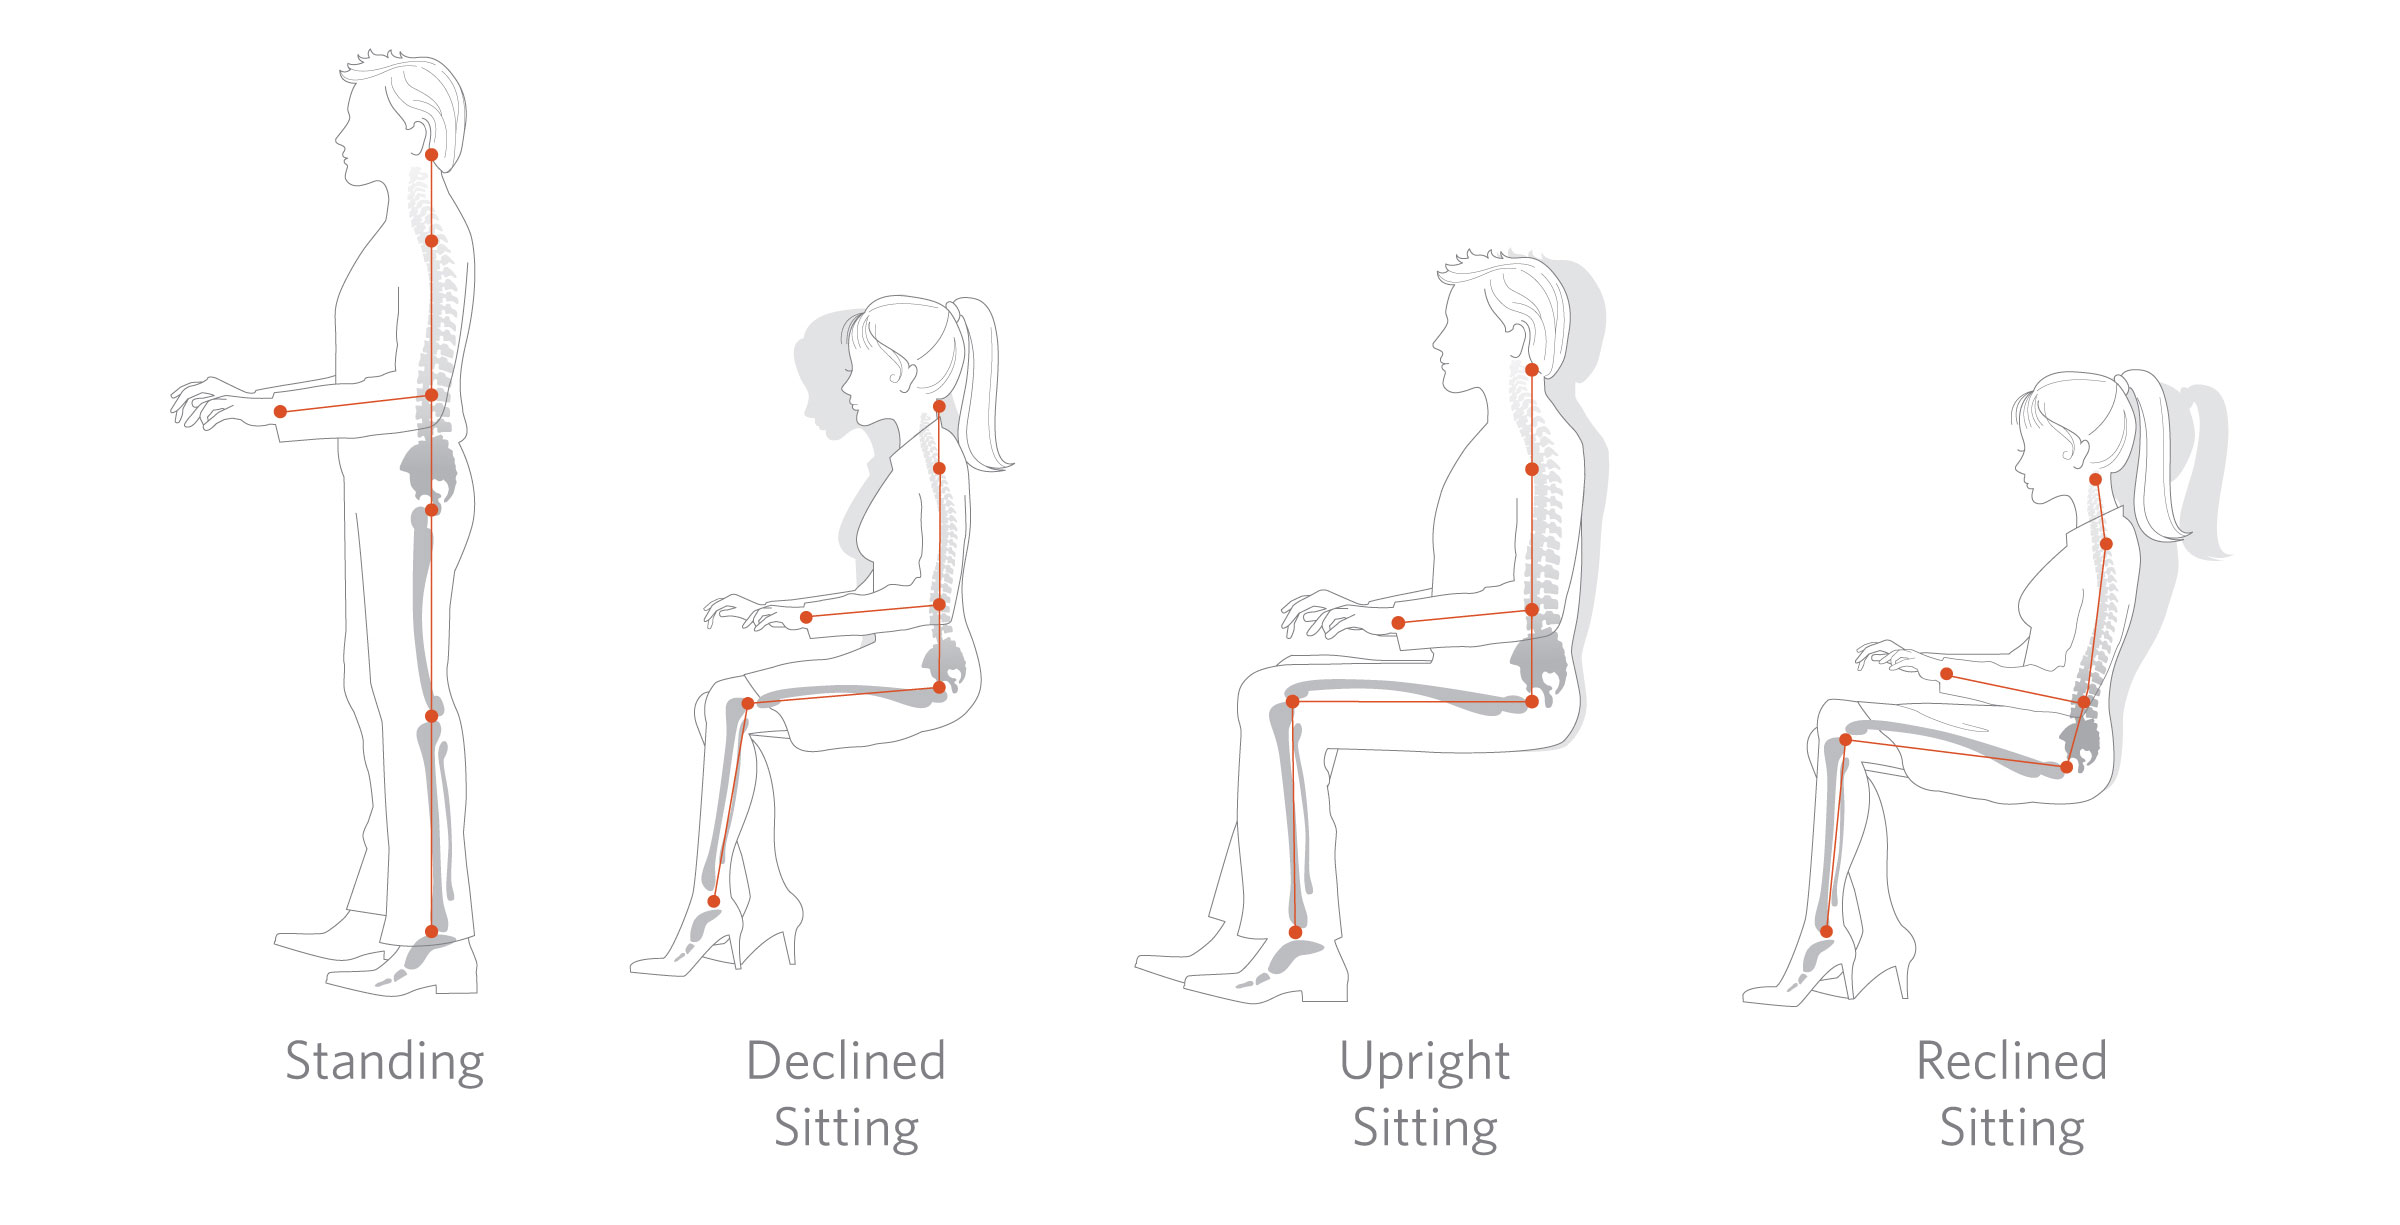 ergonomic chair keyboard position plastic reclining garden chairs uk facts about standing desks good ergonomics in the modern workplace